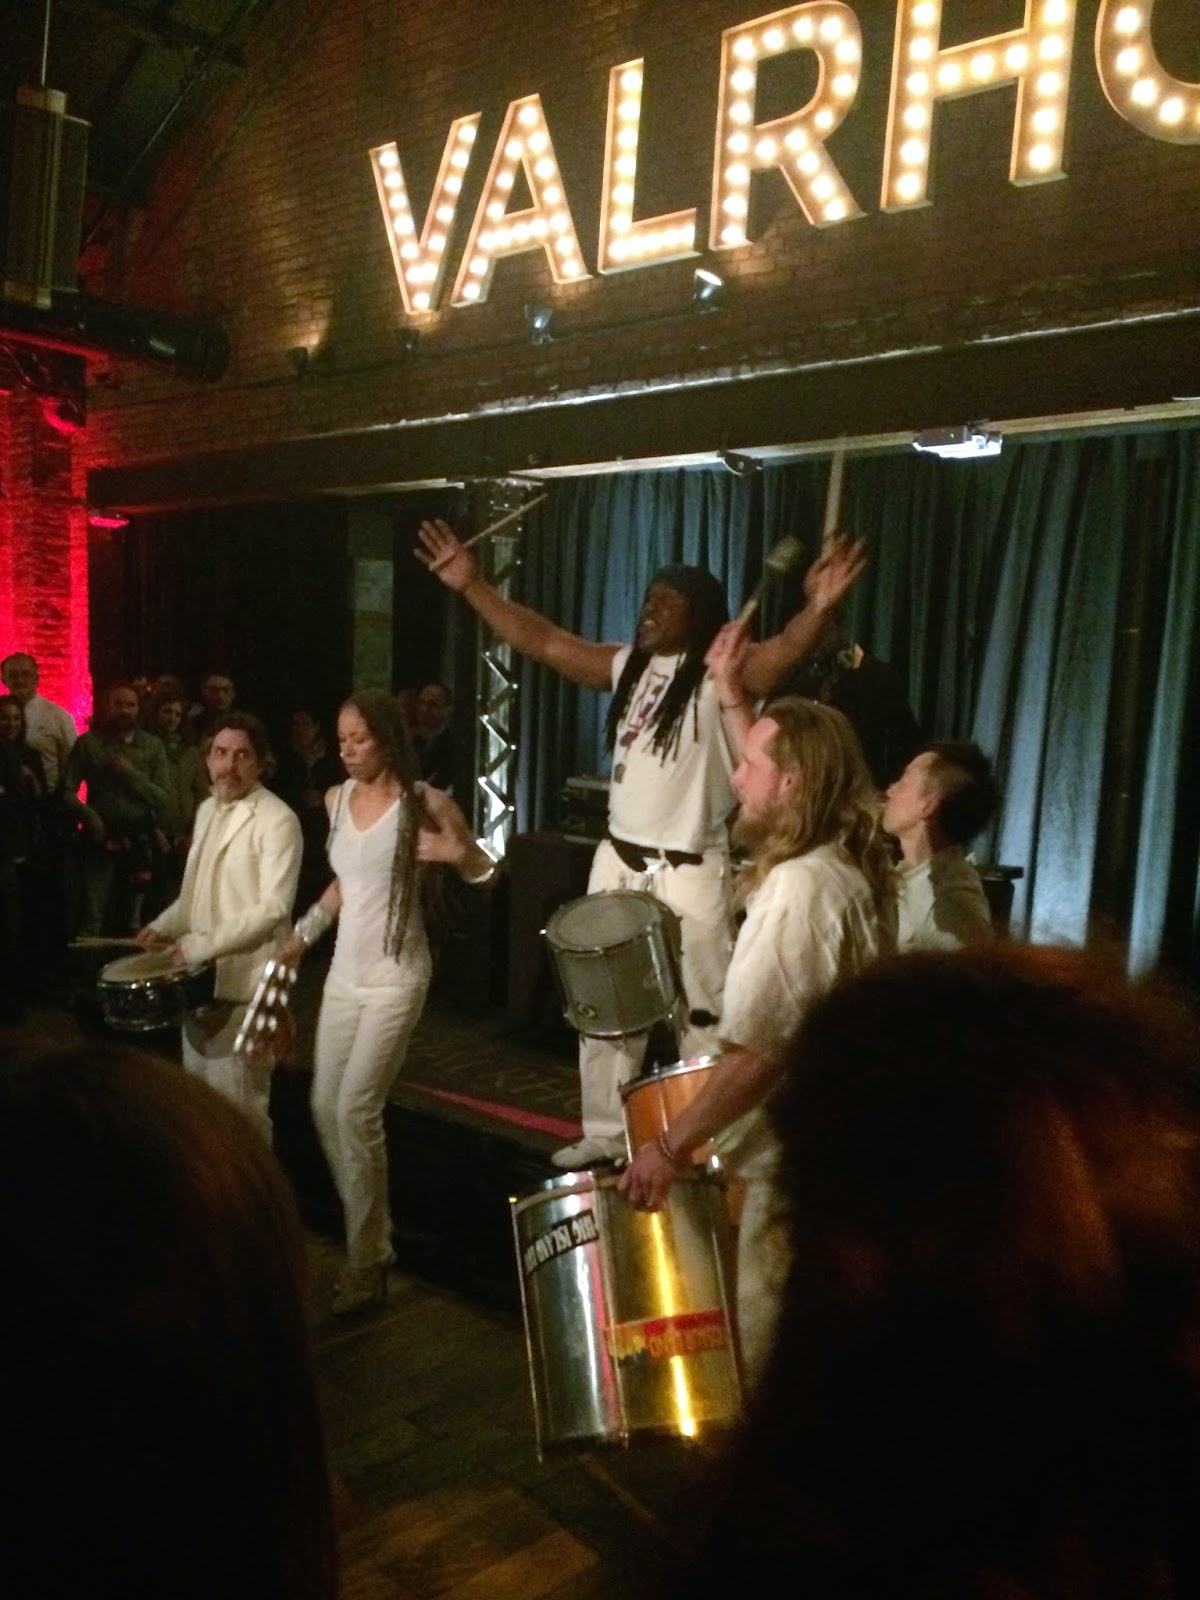 reggae band at Valrhona party